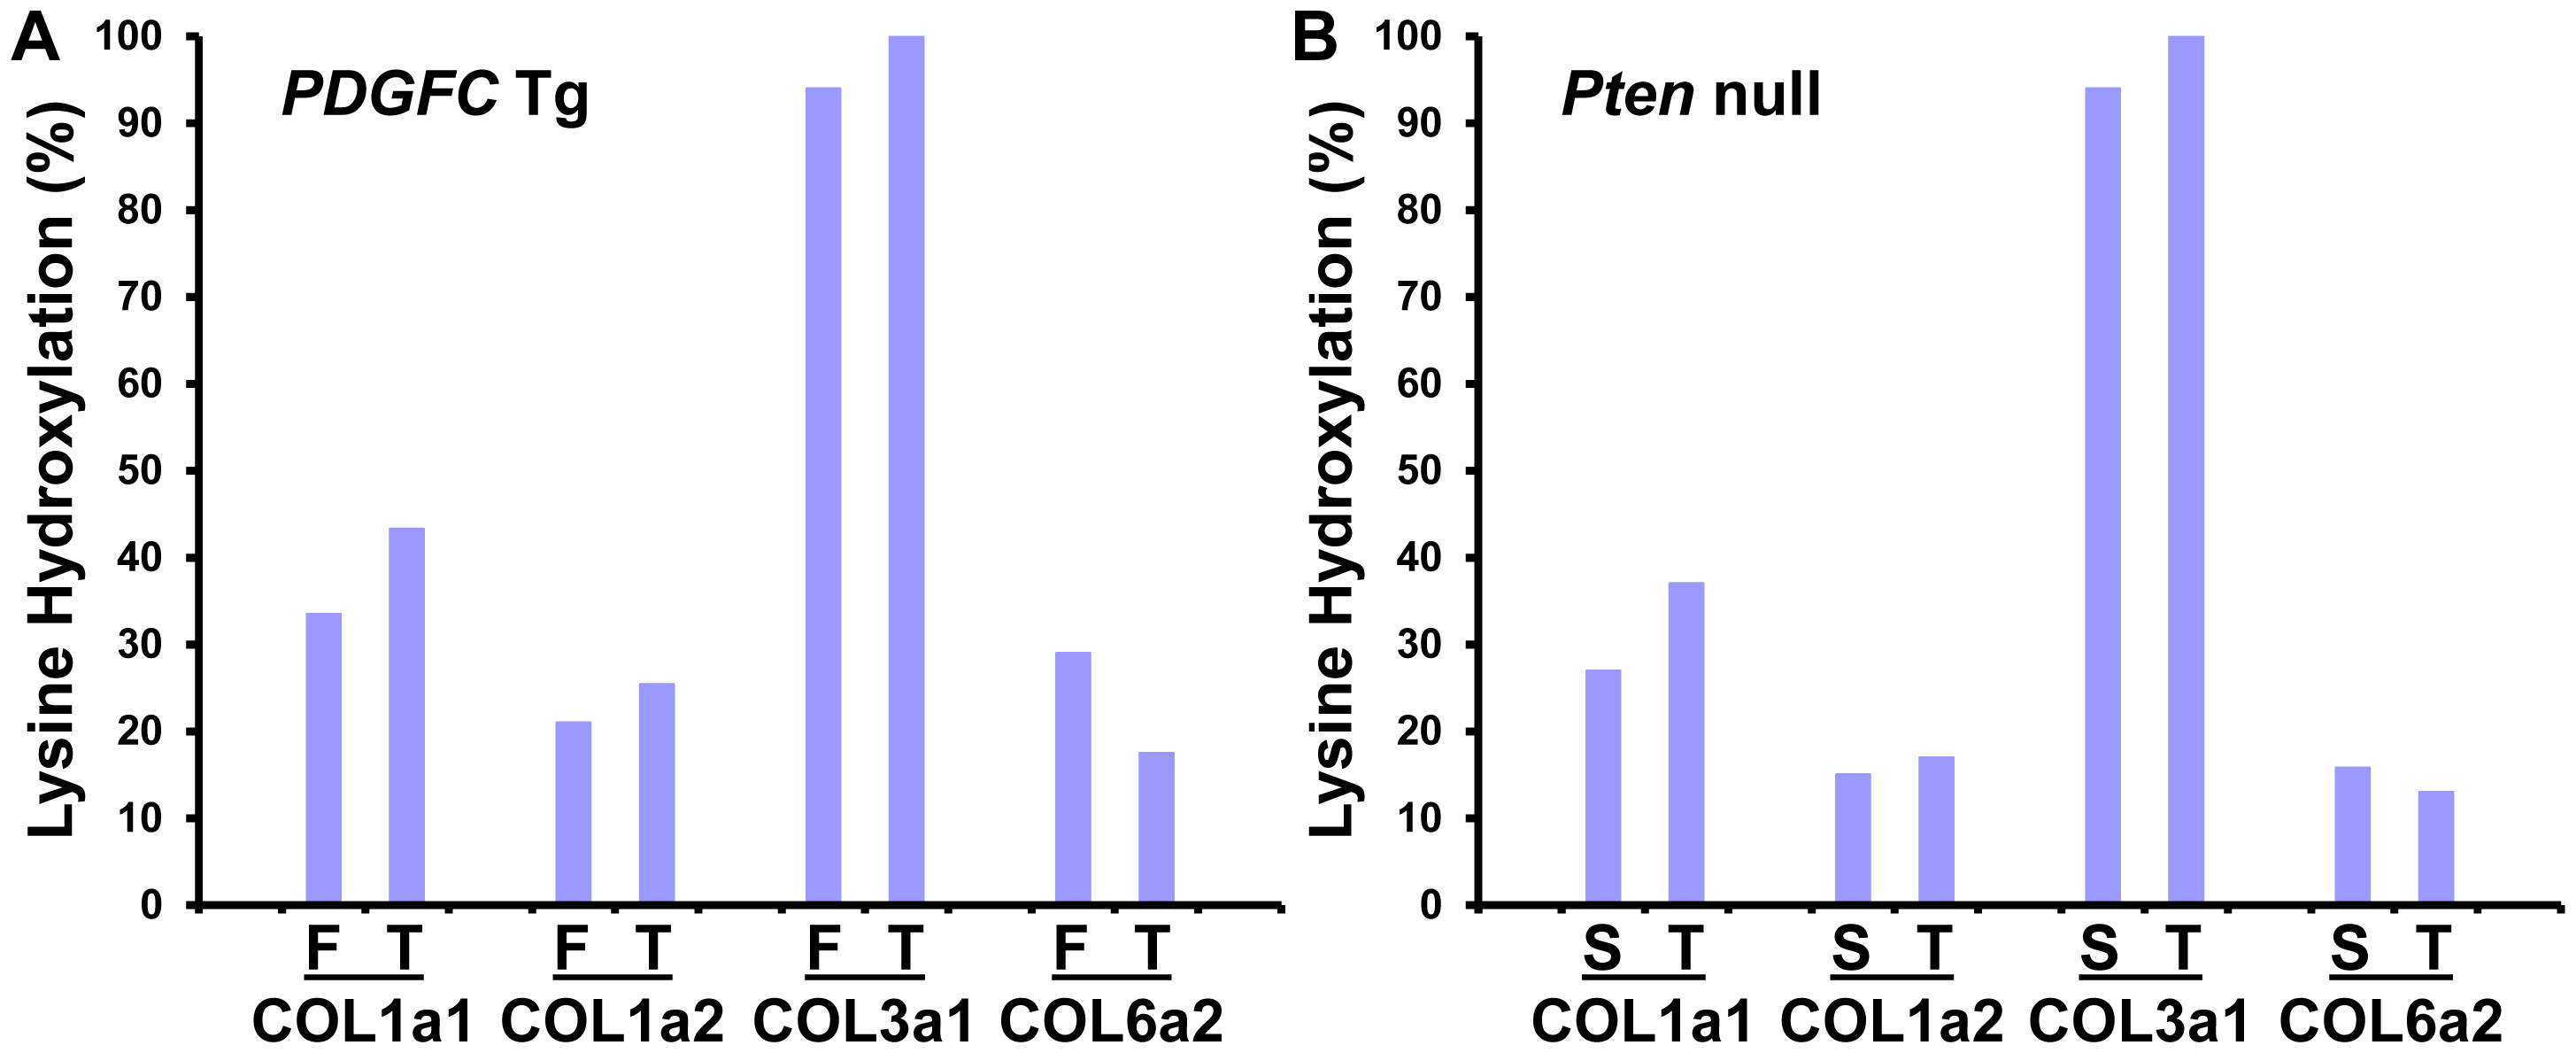 Percentage of peptides with lysine hydroxylation identified for COL1A1, COL1A2, COL3A1, and COL6A2.